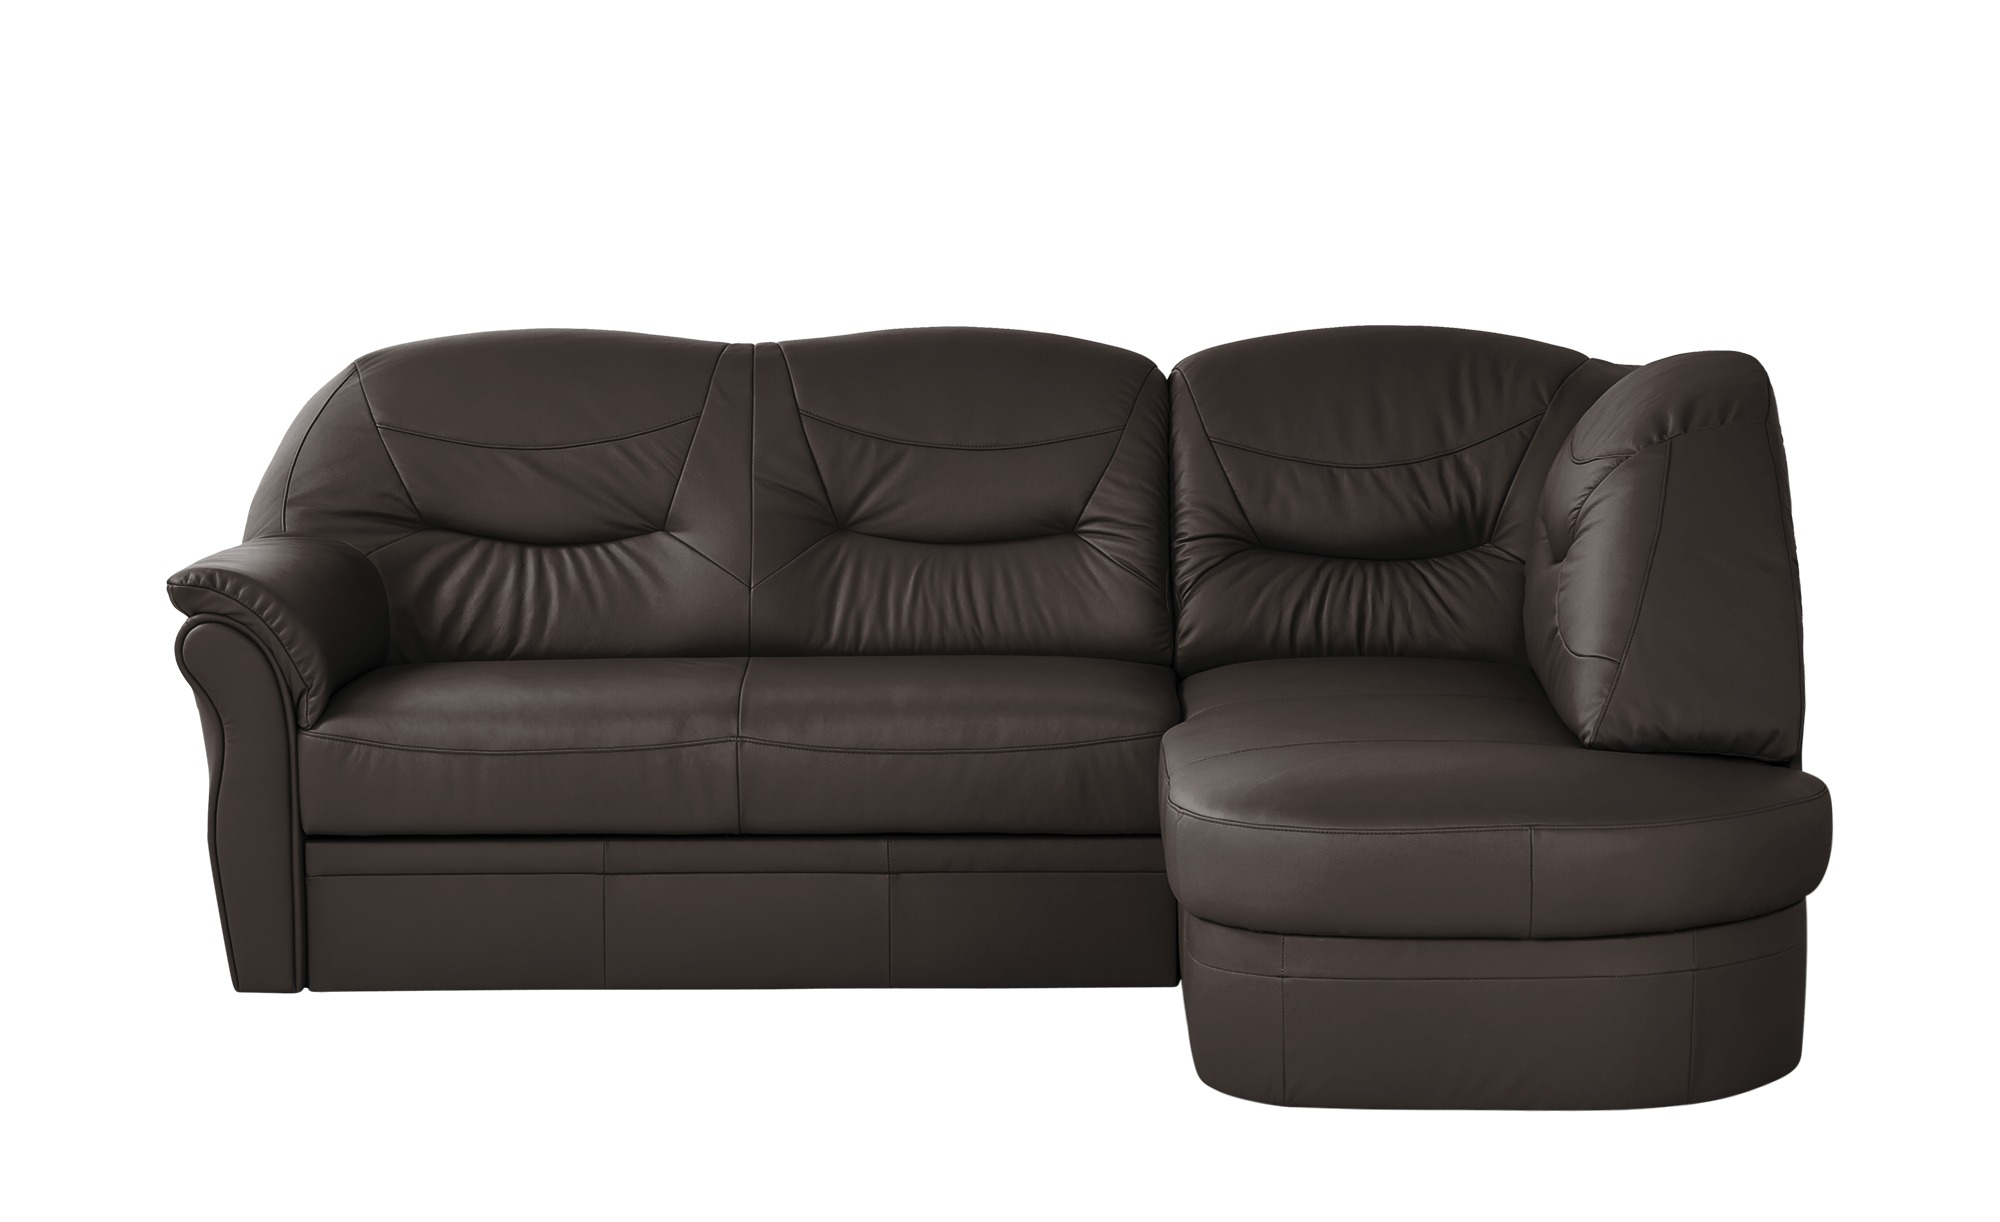 leder ecksofa victoria breite h he 91 cm braun online kaufen bei woonio. Black Bedroom Furniture Sets. Home Design Ideas